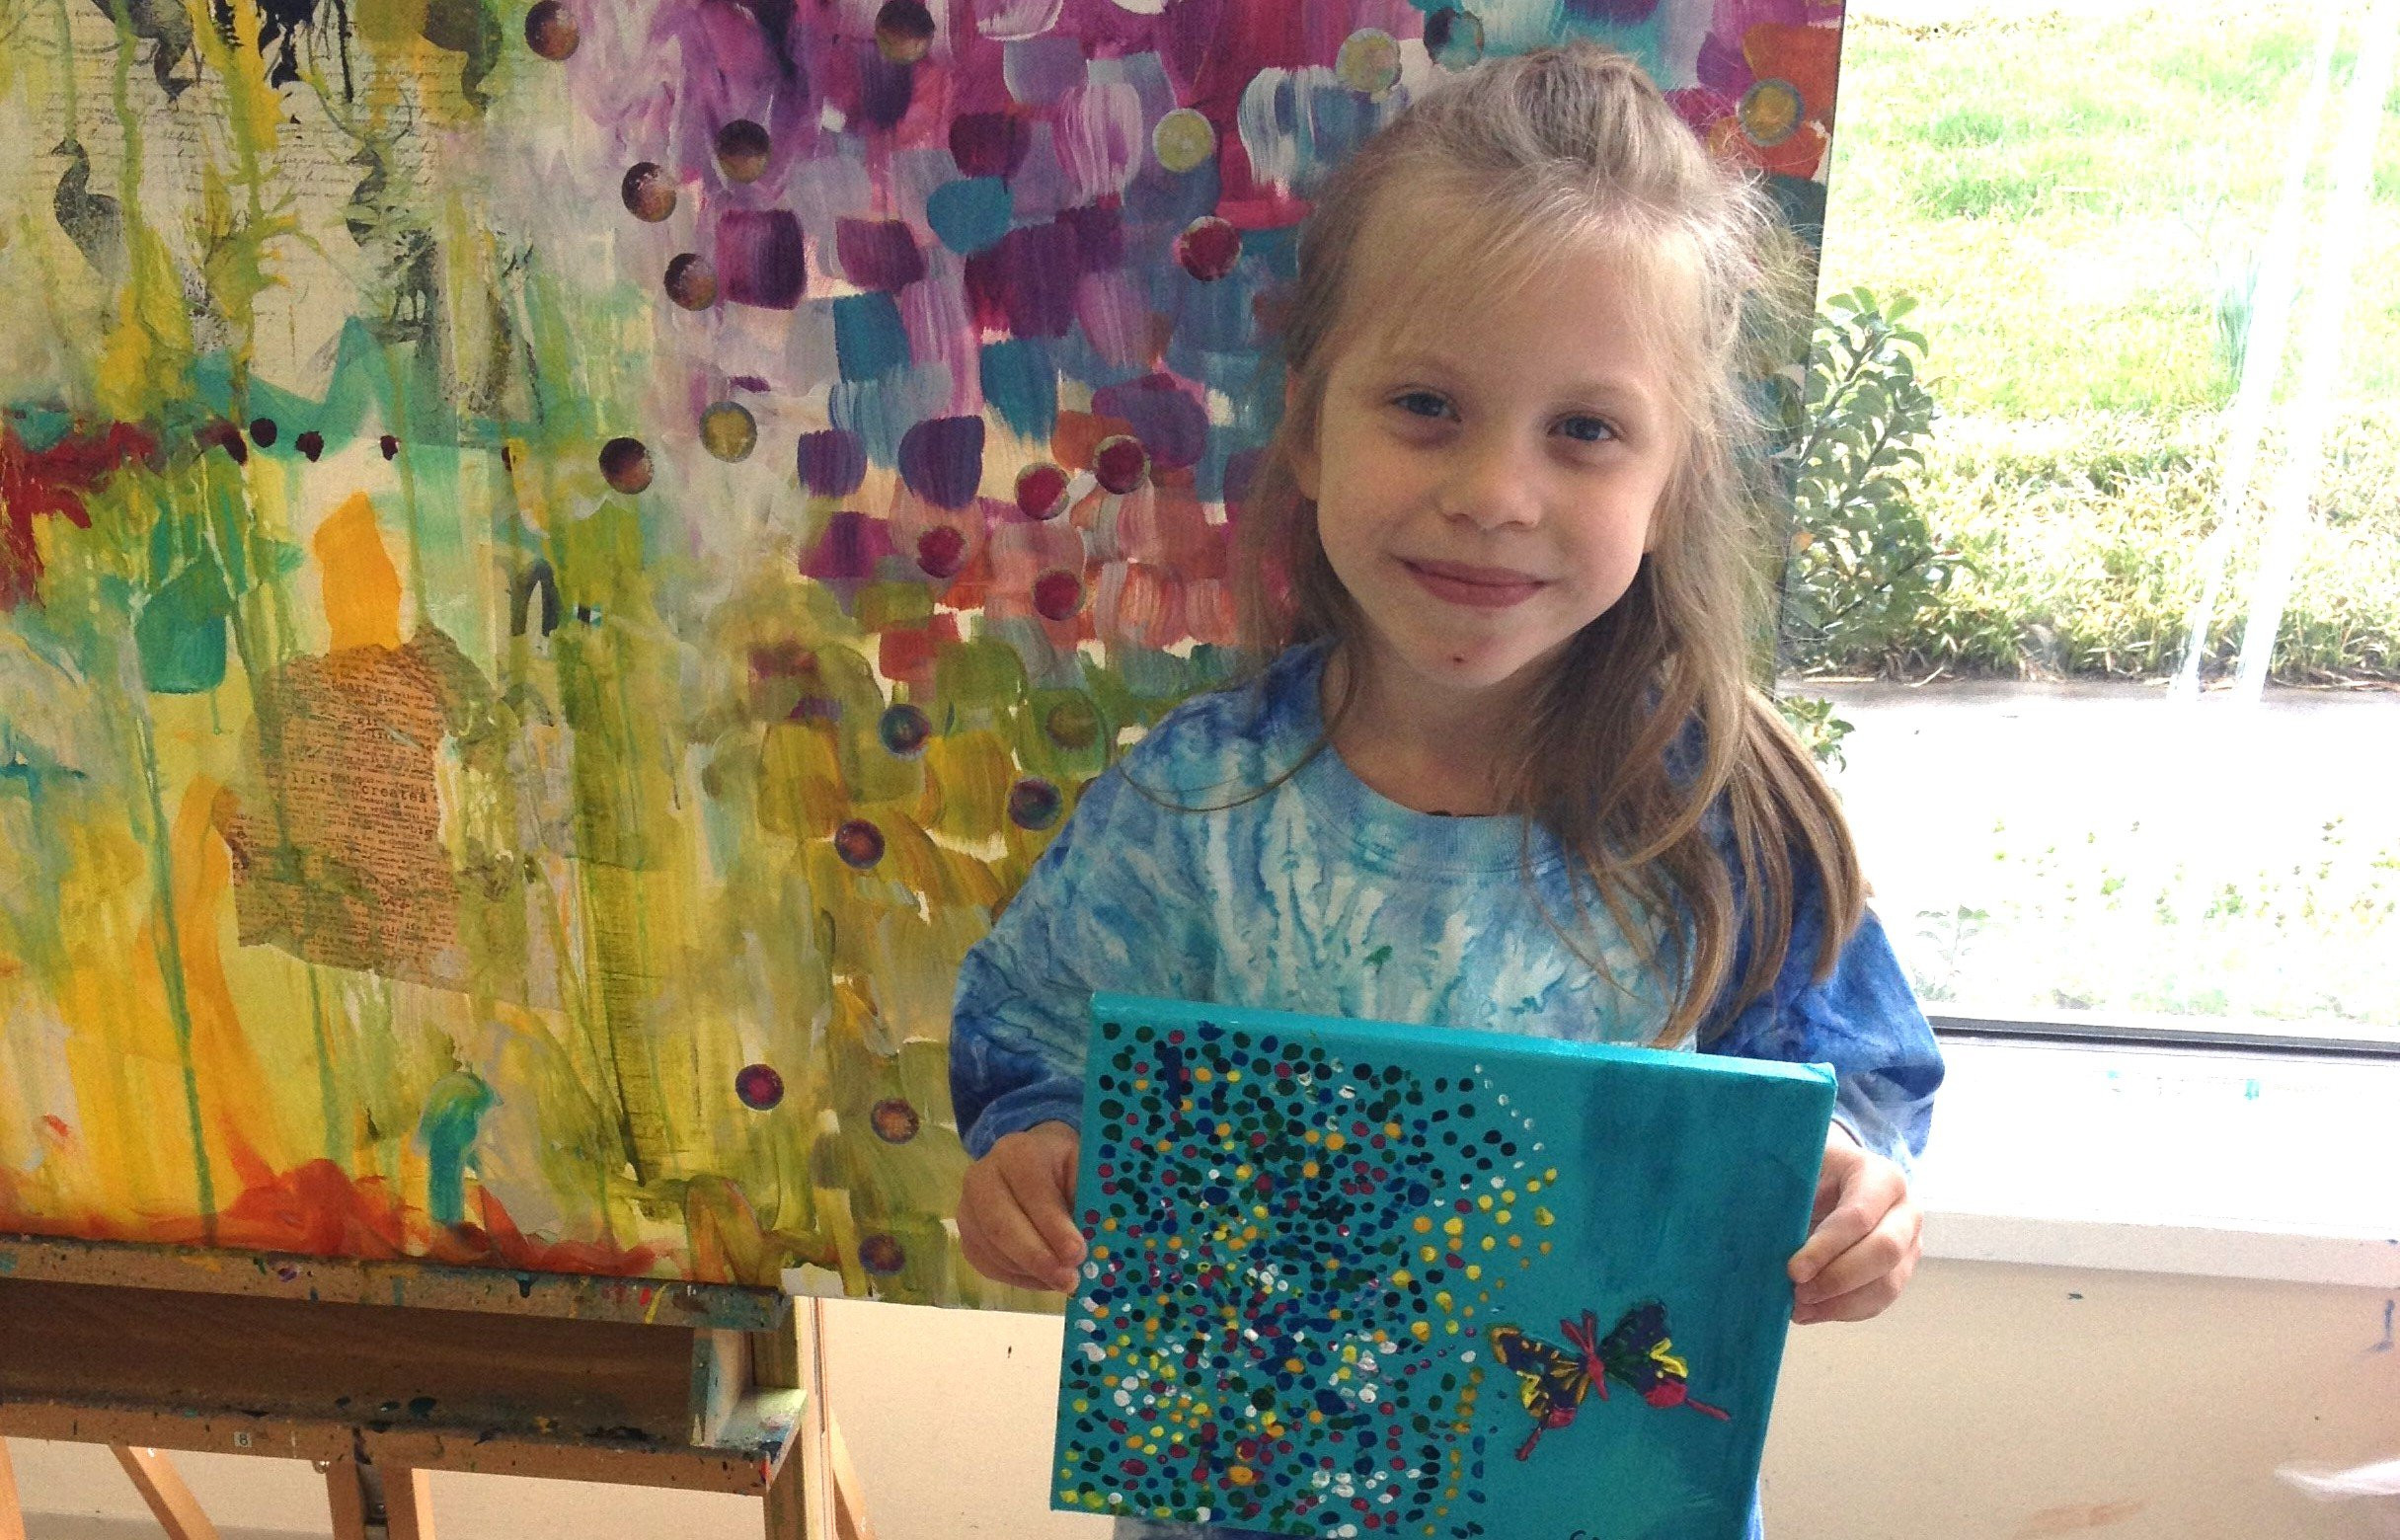 A little girl holds a blue painting with a butterfly and dots while standing in front of a colorful painting.